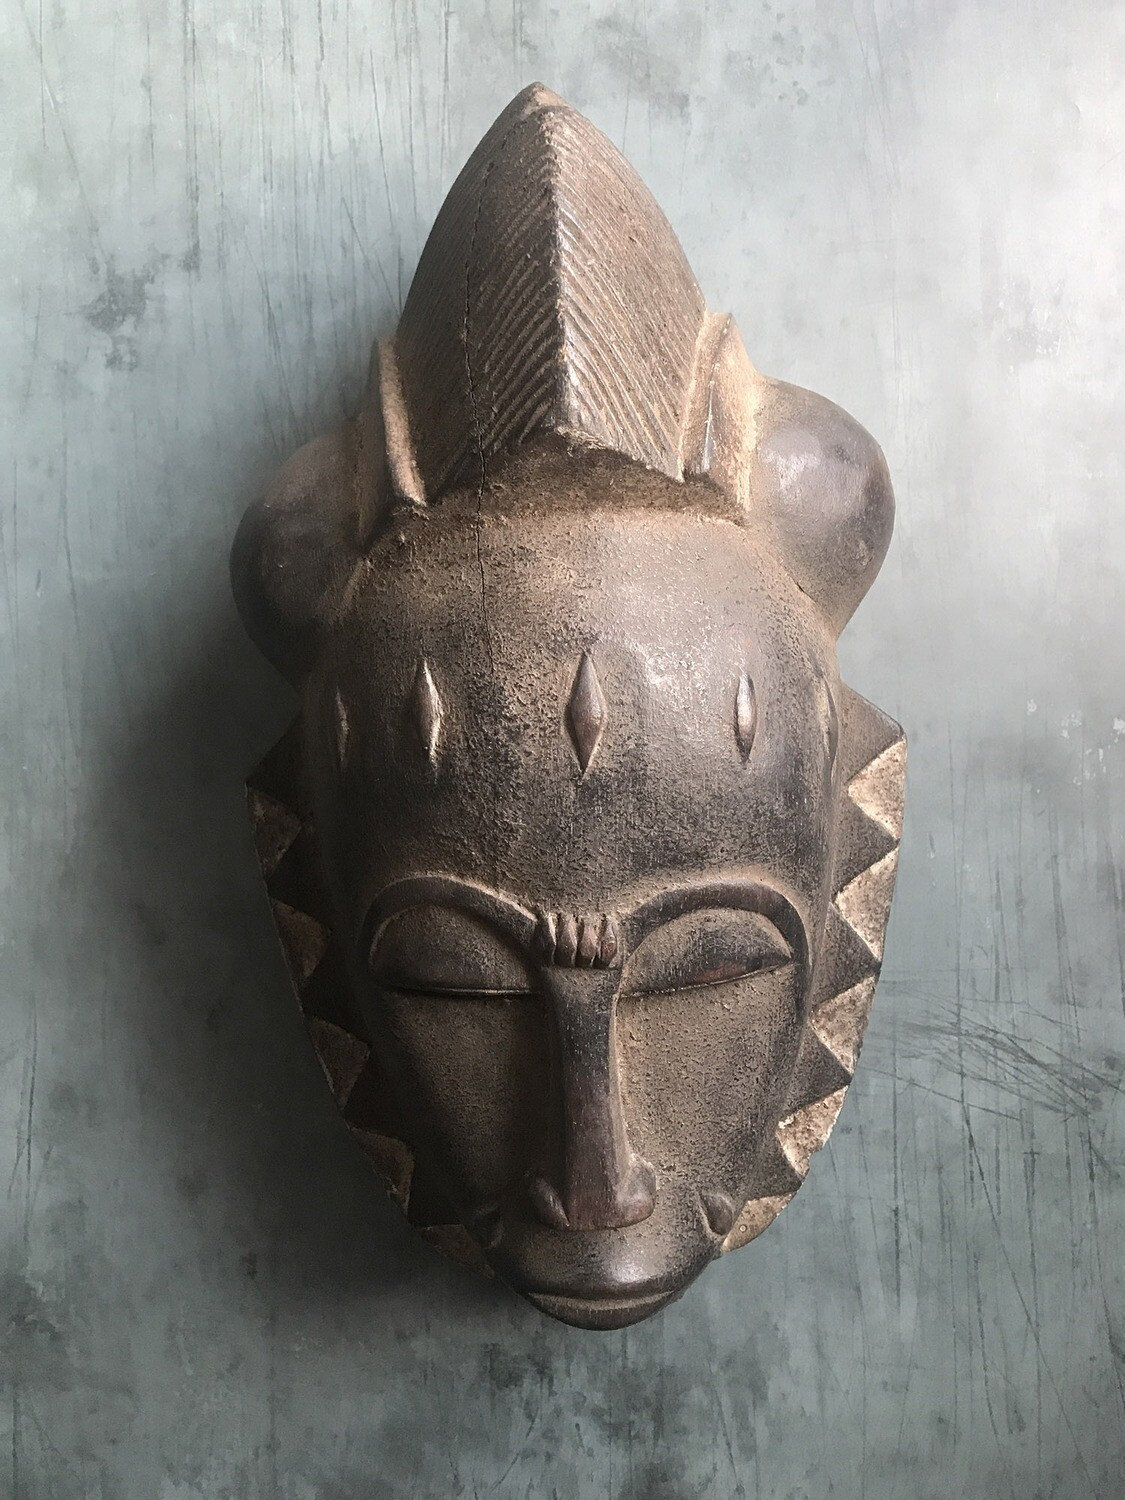 Mask from Cote d'Ivoire Africa